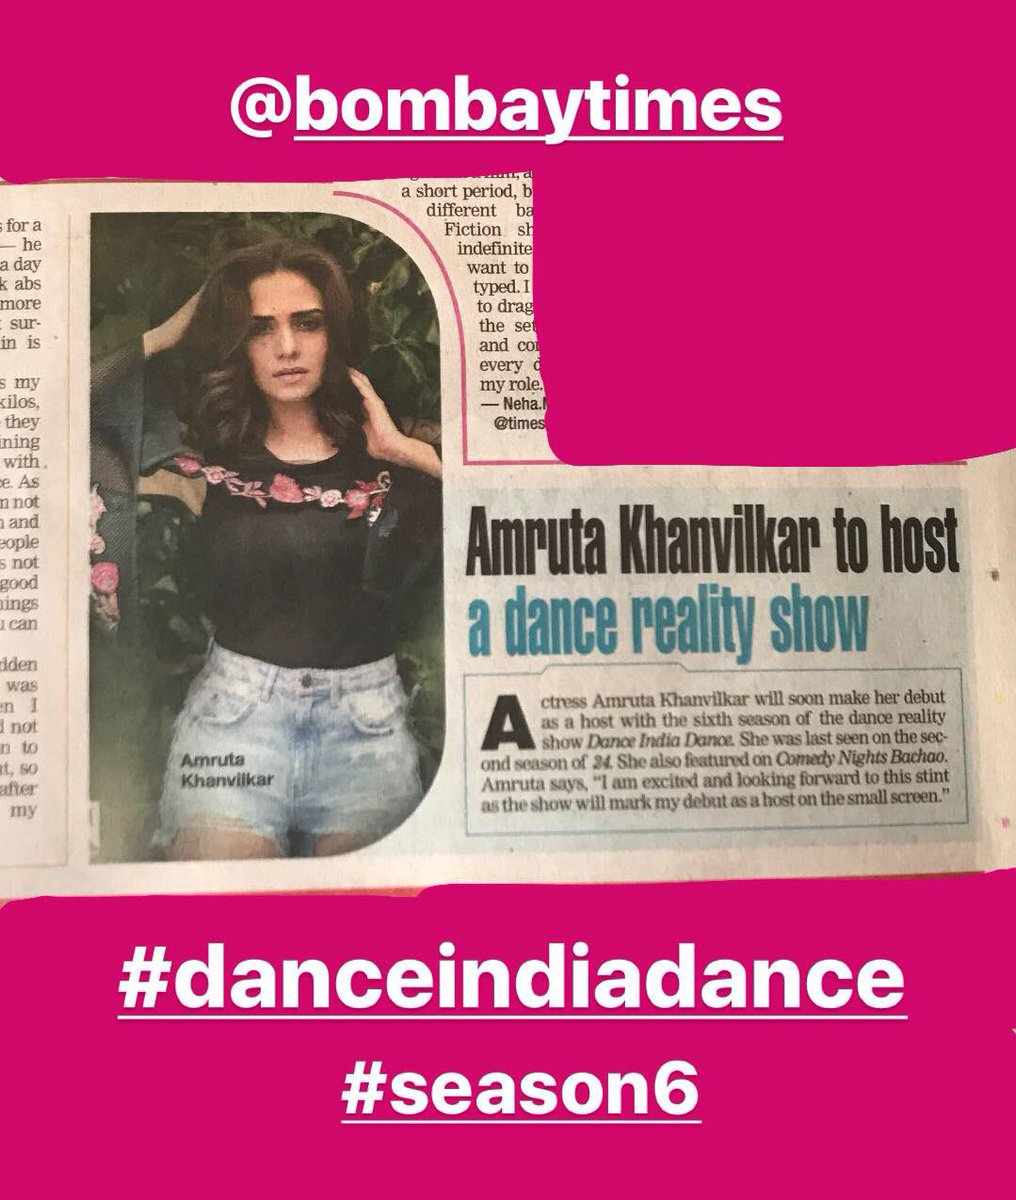 Something I m really excited about #danceindiadance #did #season6 @ZeeTV<br>http://pic.twitter.com/foMd7ZkpdI